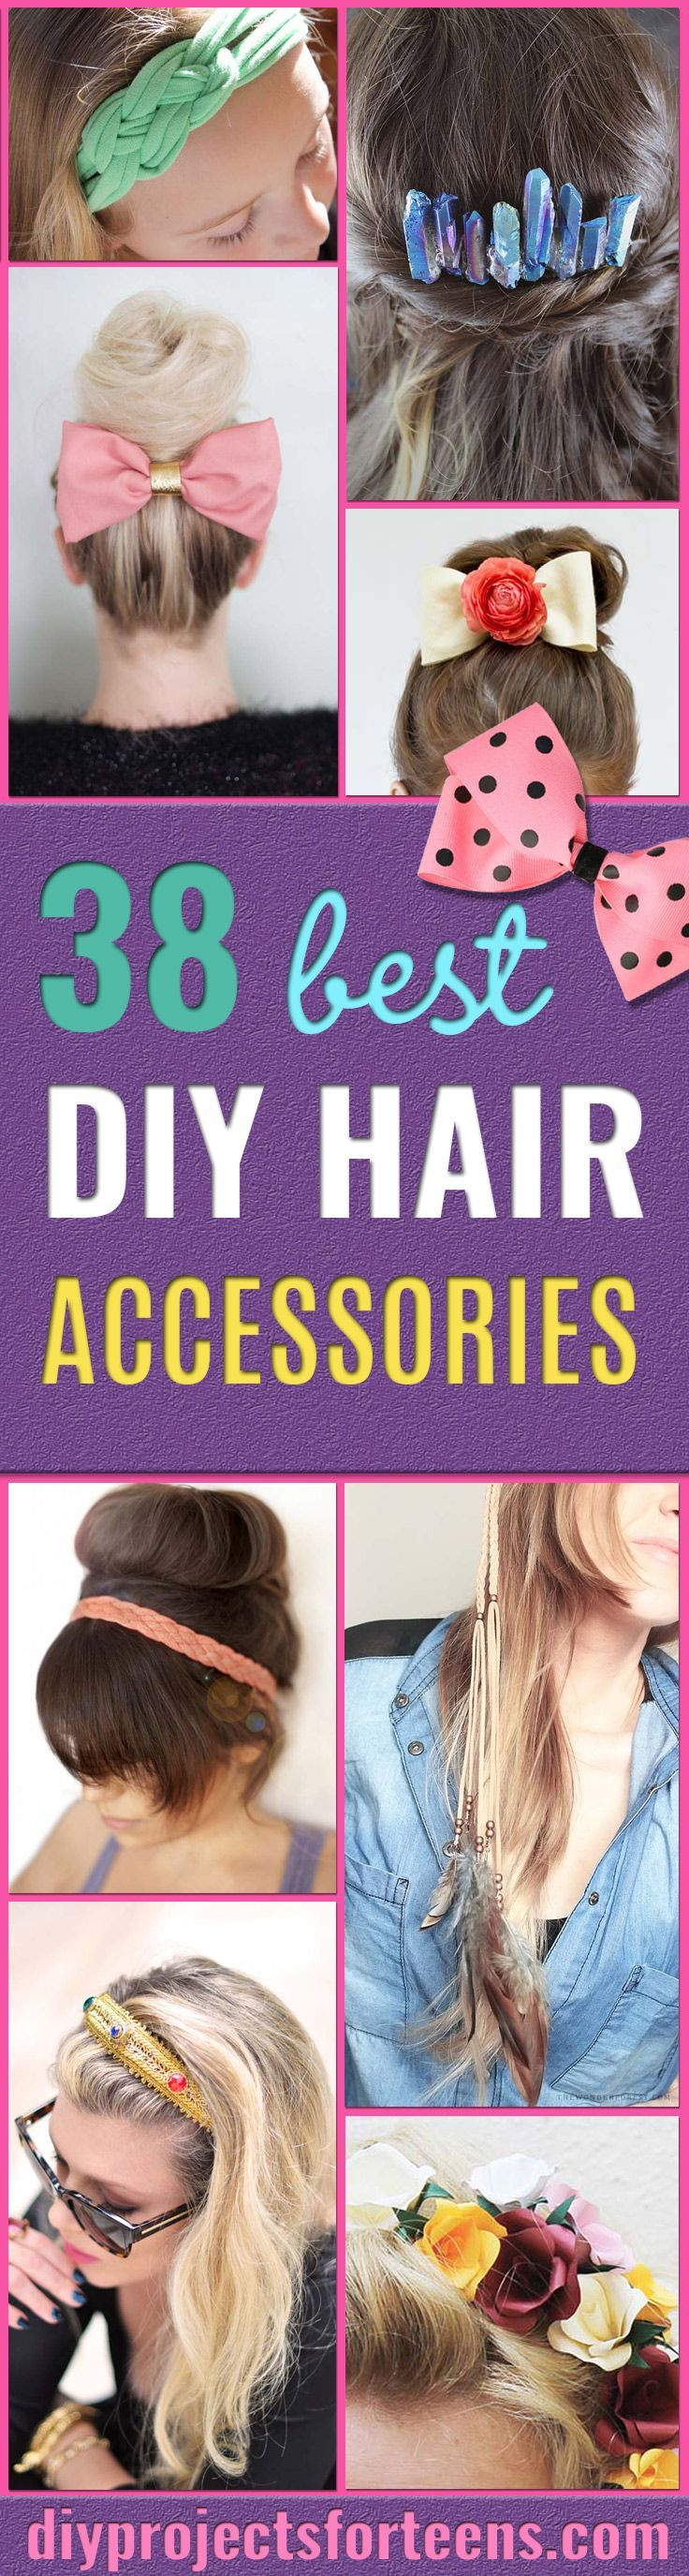 38 Creative DIY Hair Accessories - Create Pretty Hairstyles for Women, Teens and...